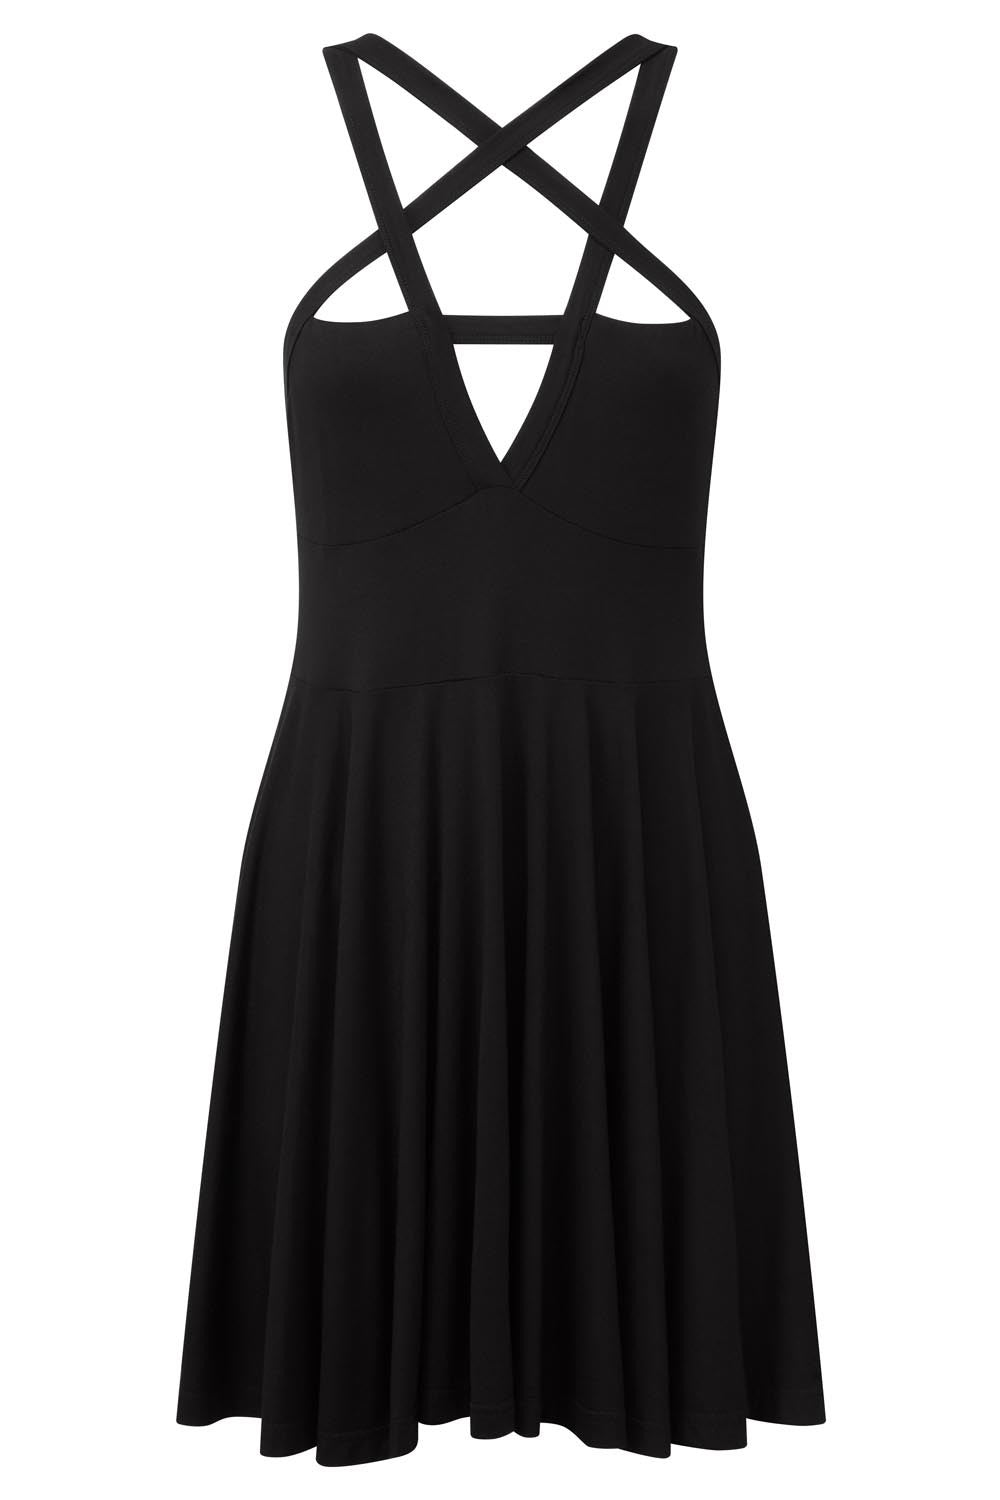 black goth skater dress with pentagram detail from KILLSTAR